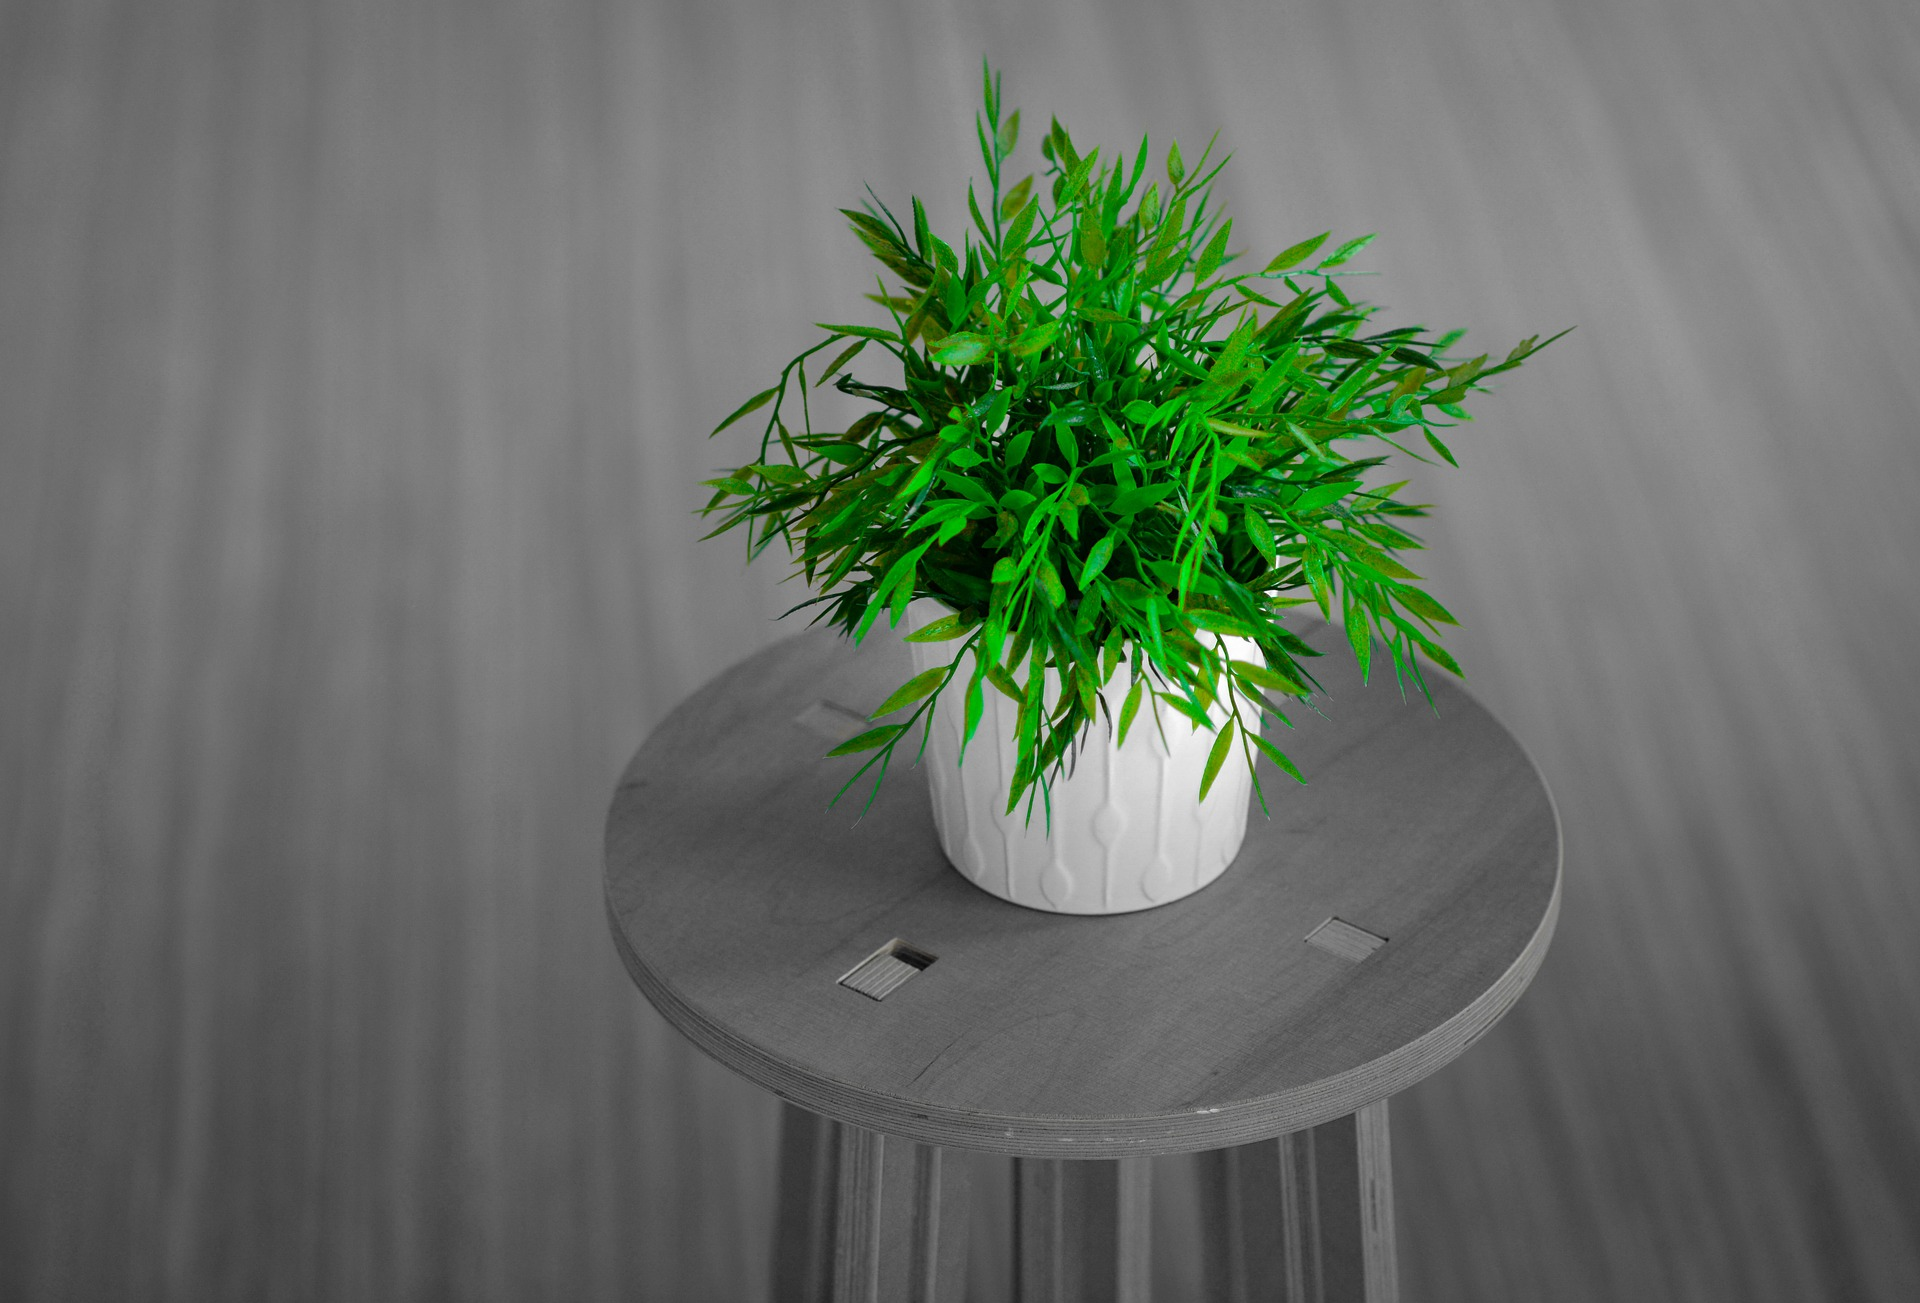 18 of the Best Desk Plants to Brighten up Your Office